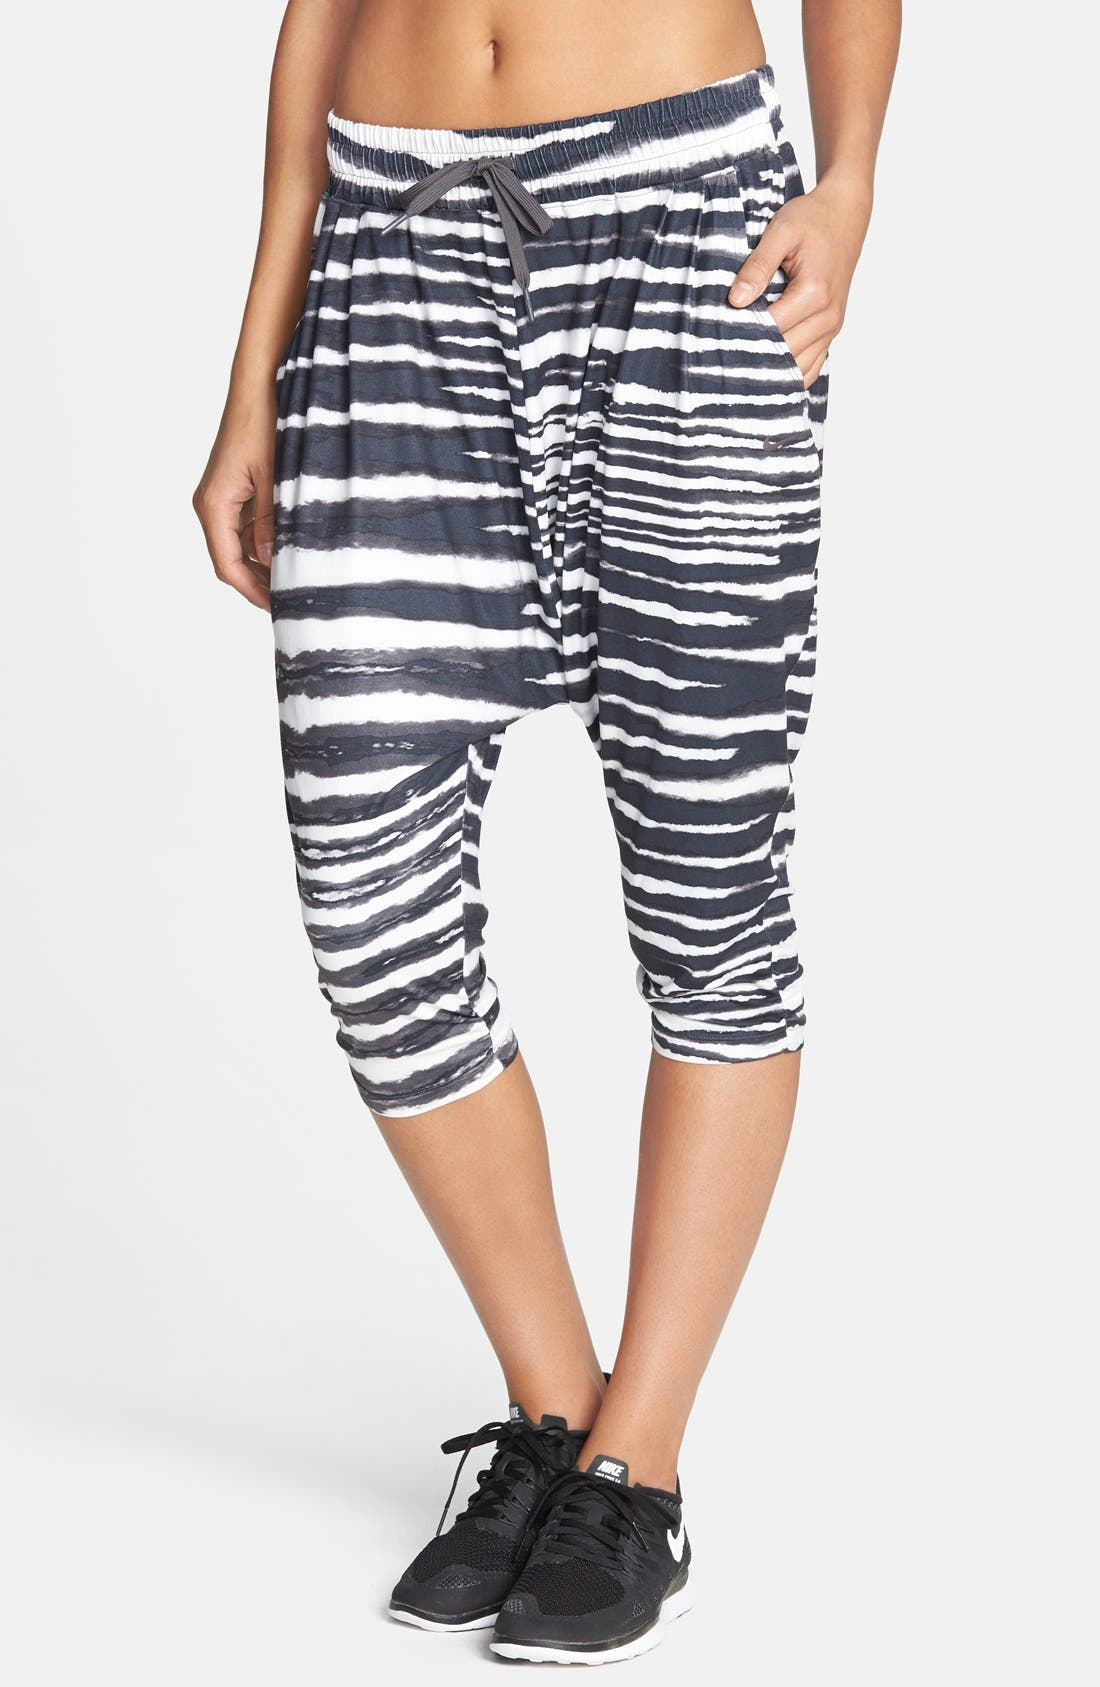 Alternate Image 1 Selected - Nike 'Avant Move - Tiger' Dri-FIT Harem Capri Pants